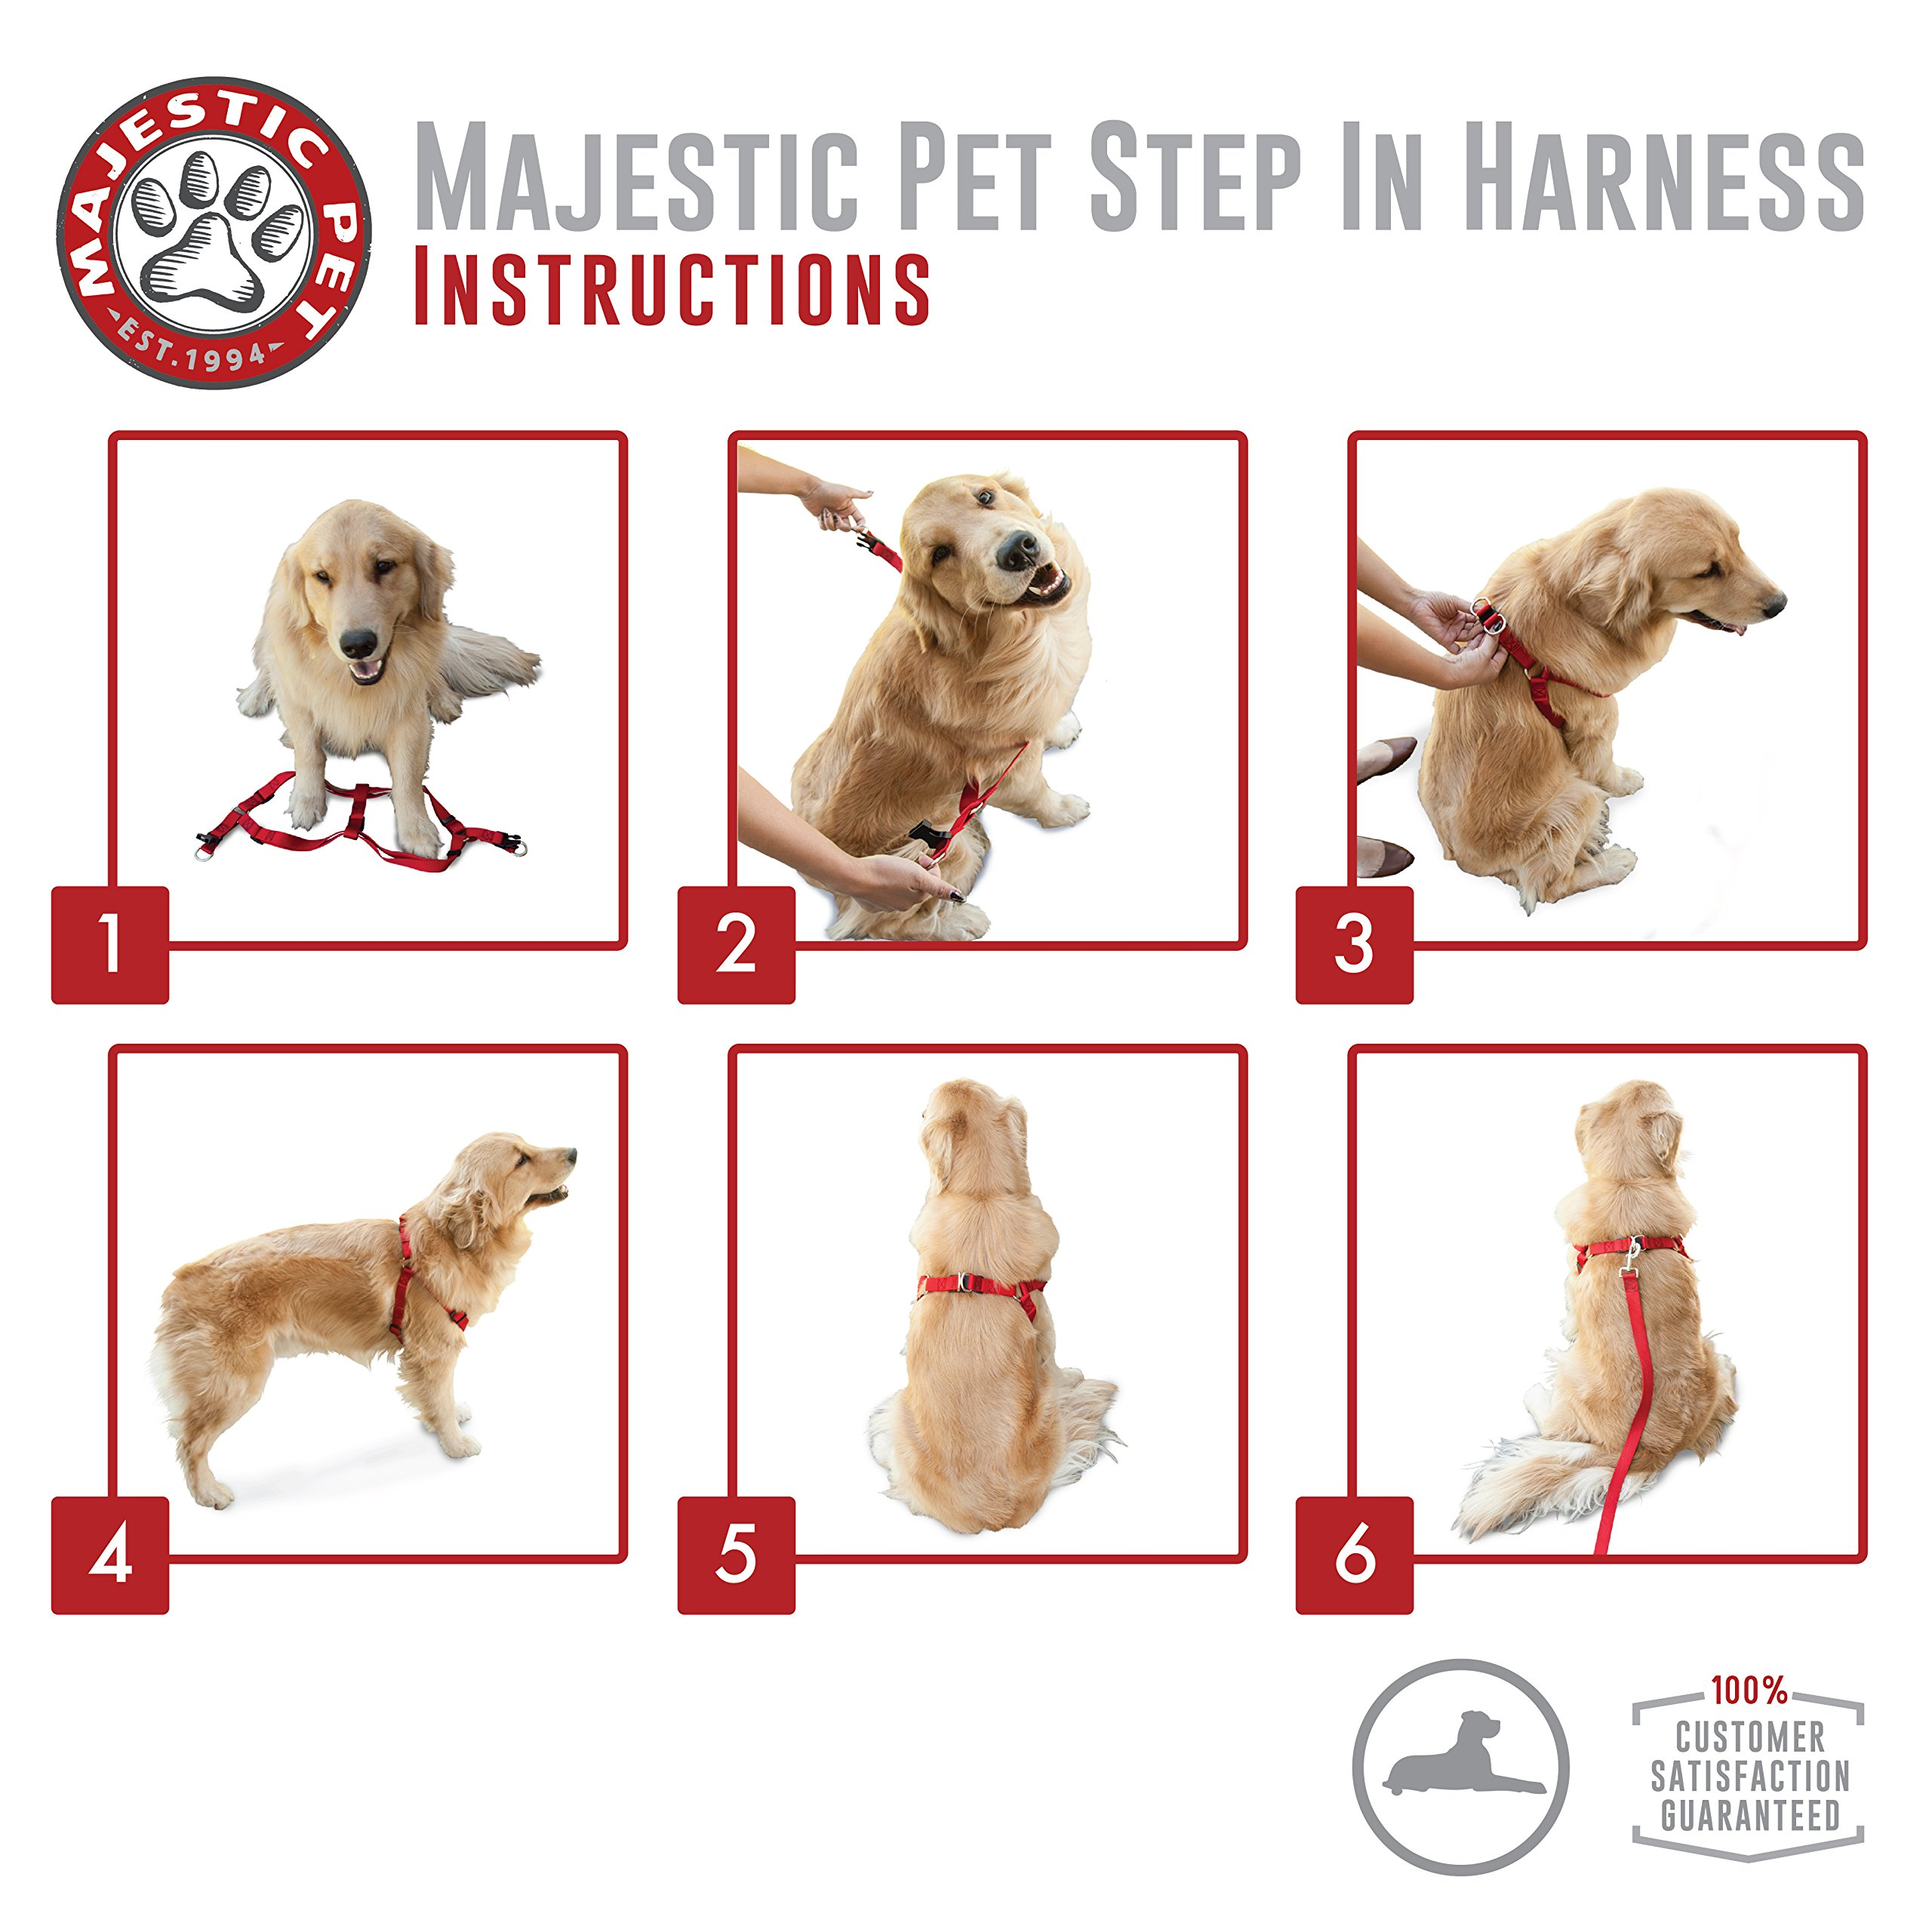 Majestic Pet Best Step In Dog Harness-Perfect For All Sized Dogs Small Medium & Large Heavy Duty Material- Adjustable For Training & Walking-25X40 Green by Majestic Pet (Image #4)